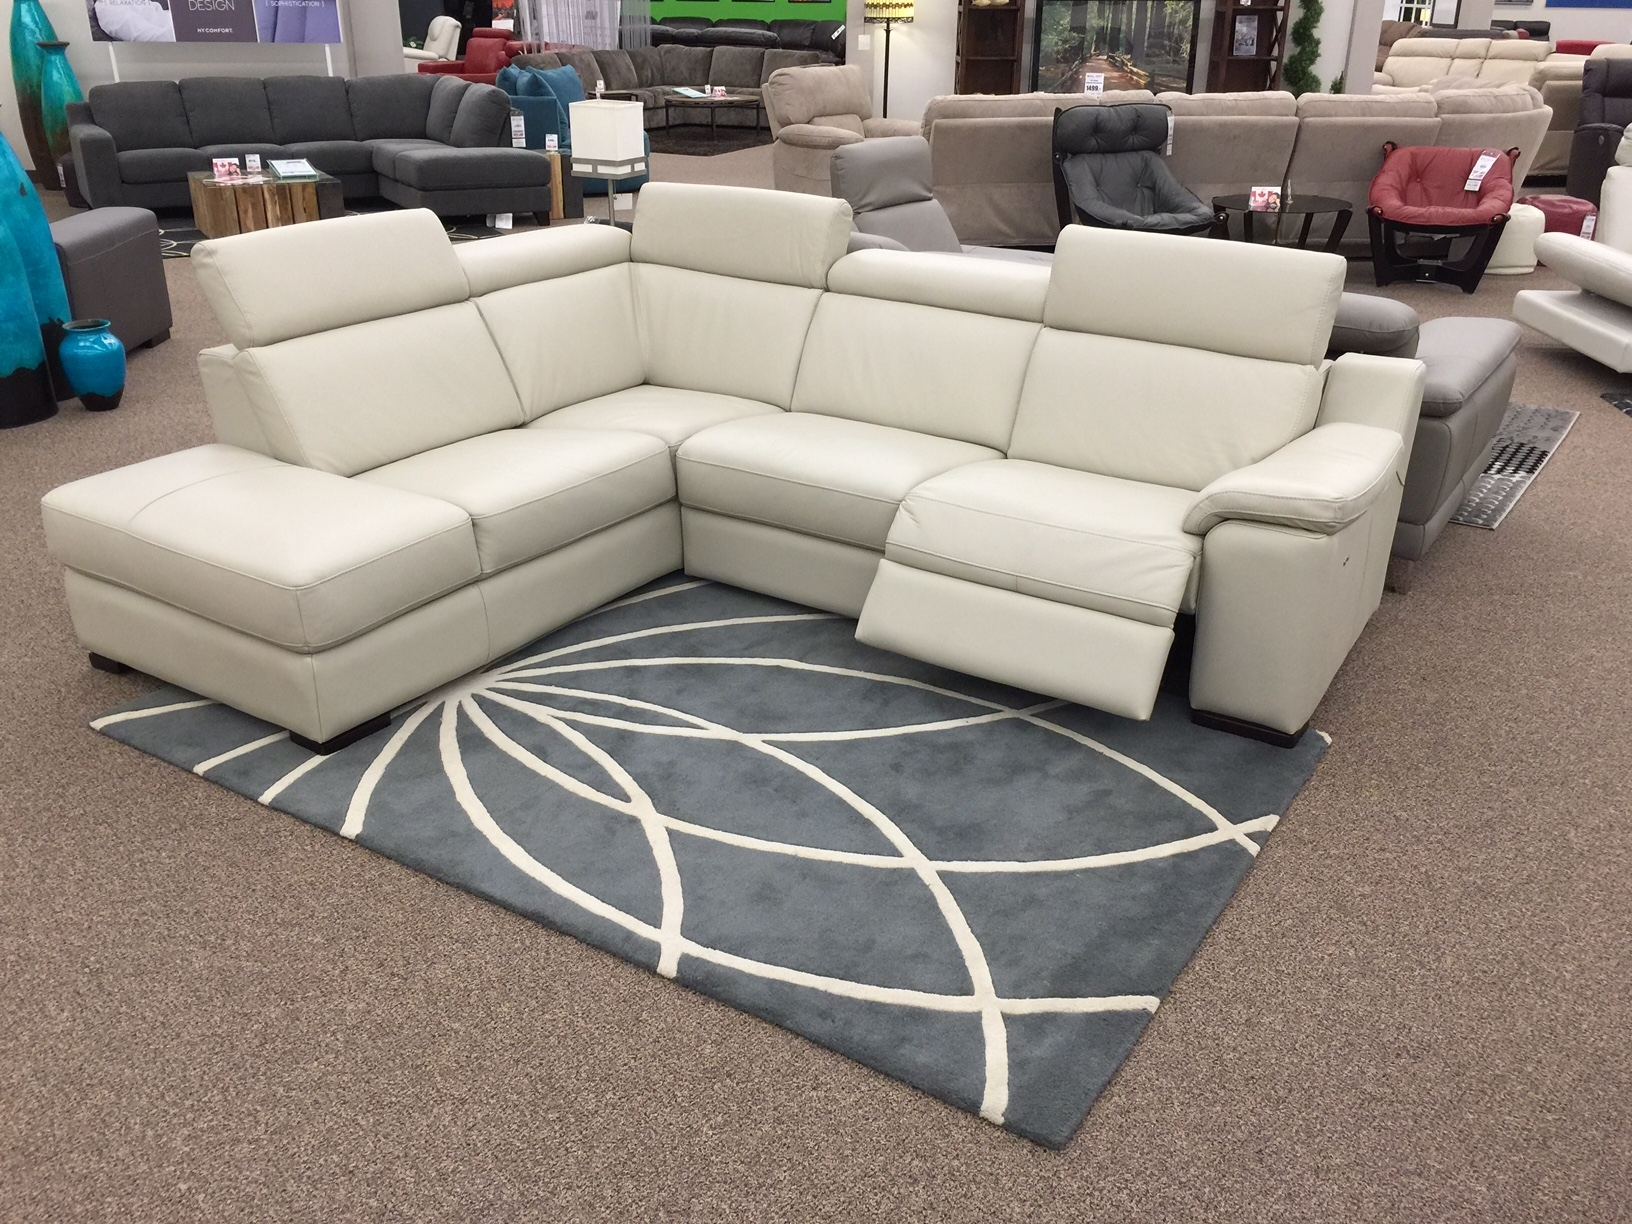 The Ashlynn Sectional Just Arrived At Sofa Land! This 100% Leather regarding Sectional Sofas in Stock (Image 9 of 10)